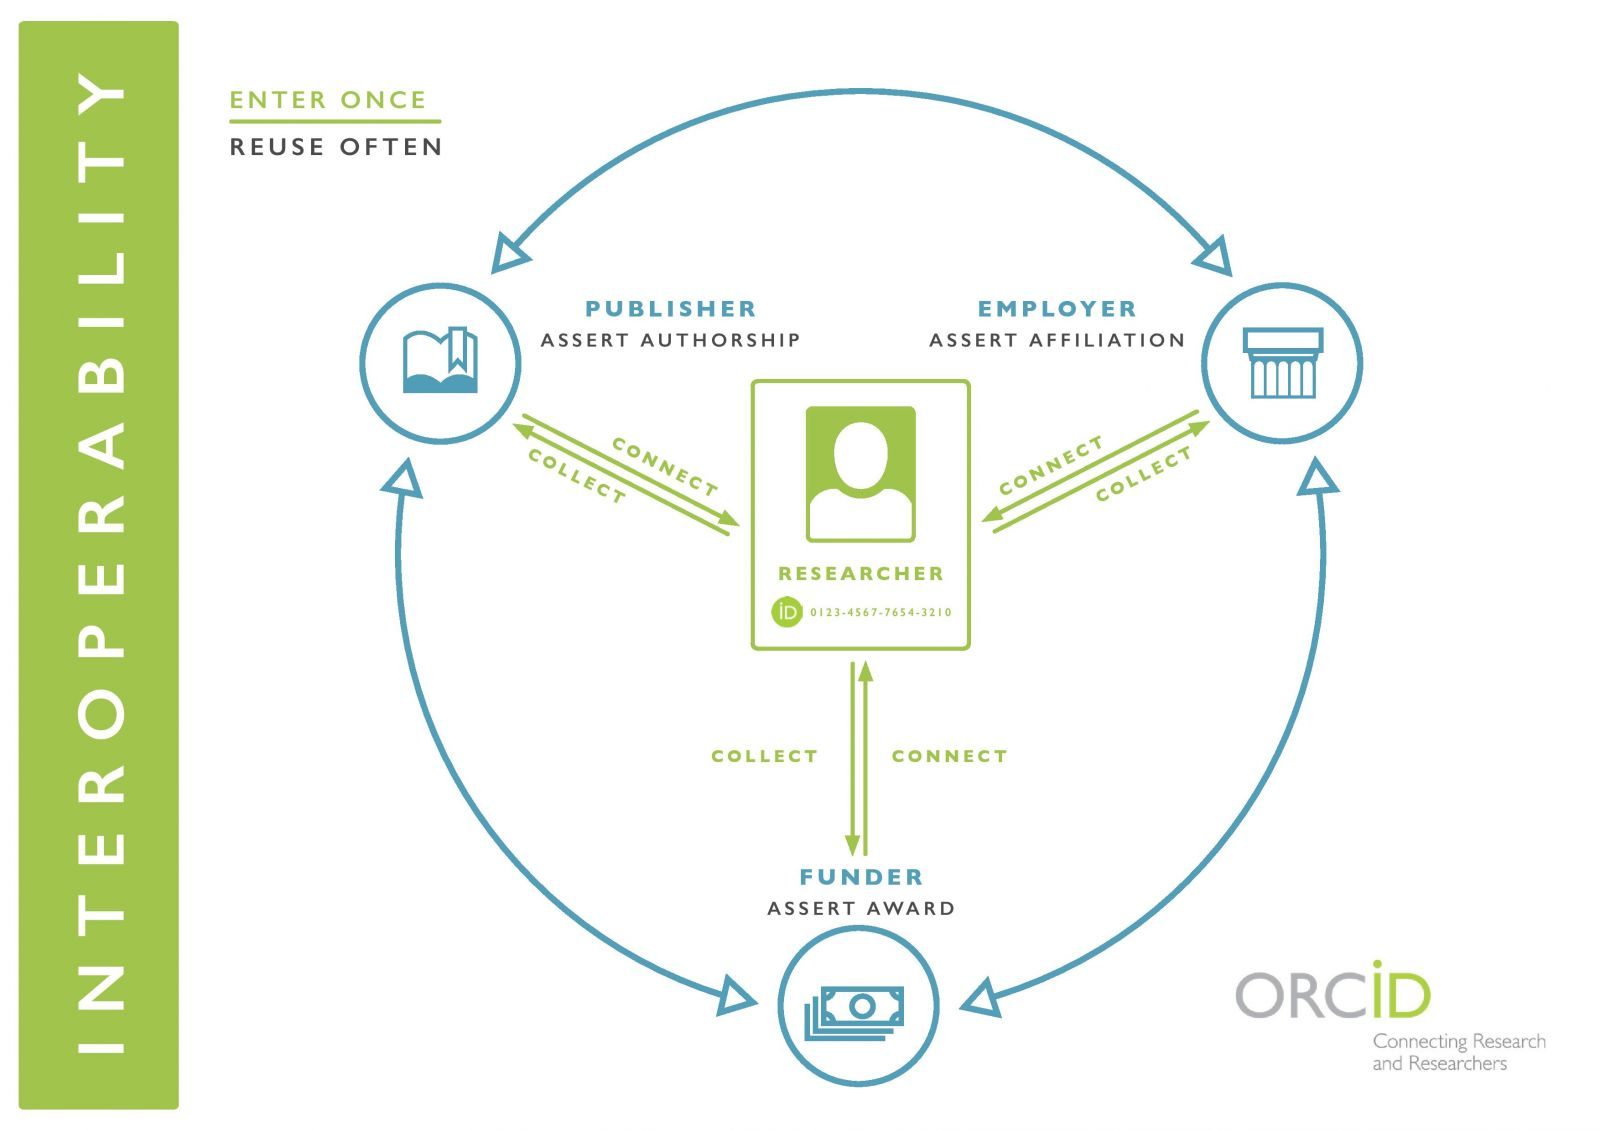 ORCID collect and connect diagram